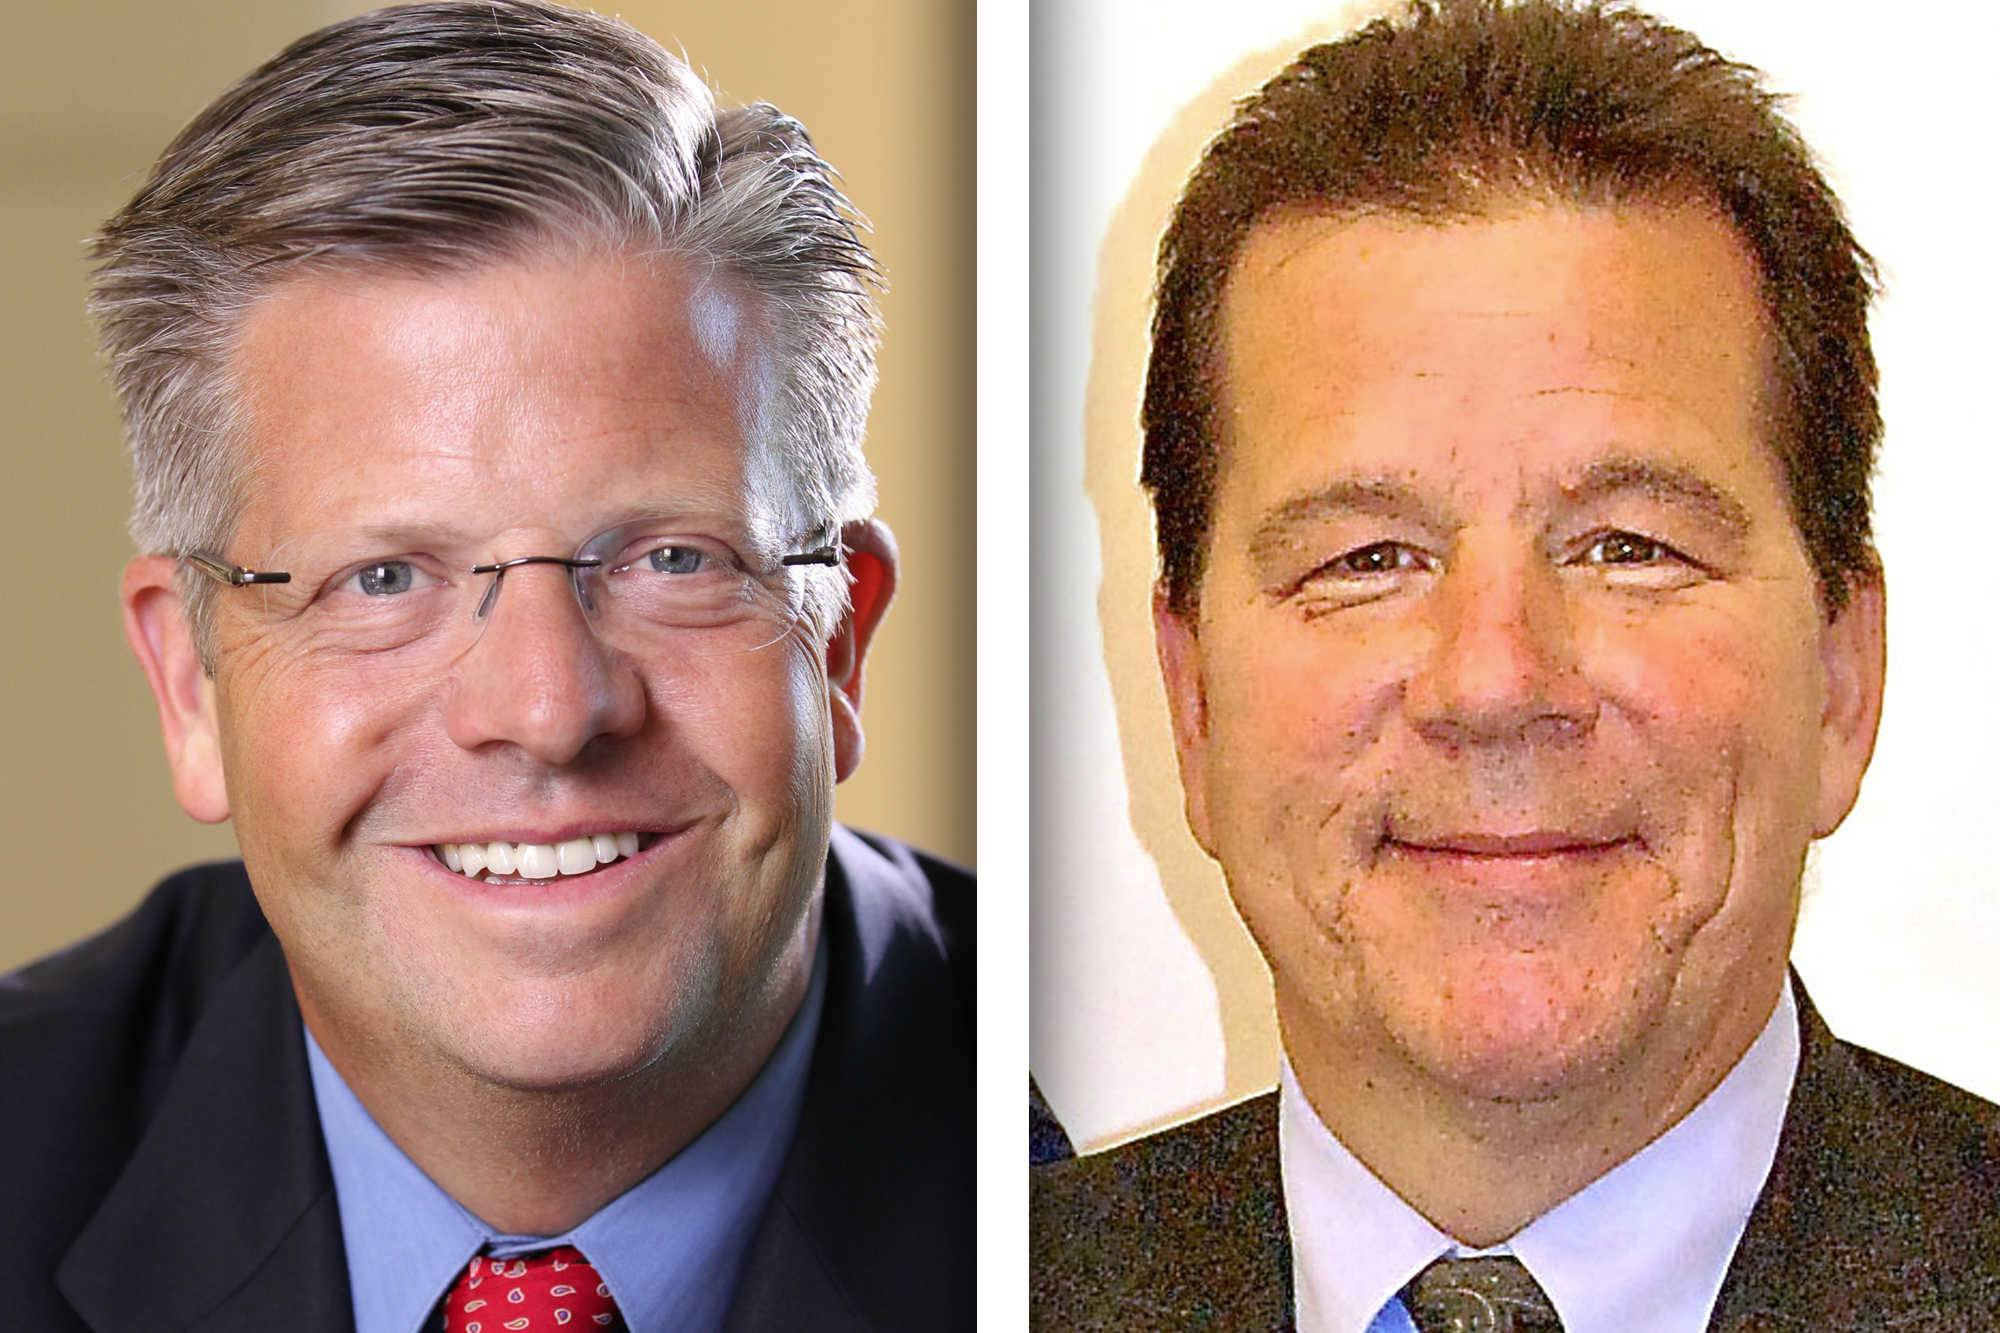 Republican Randy Hultgren, left, and Democrat Jim Walz are candidates for 14th Congressional District seat.